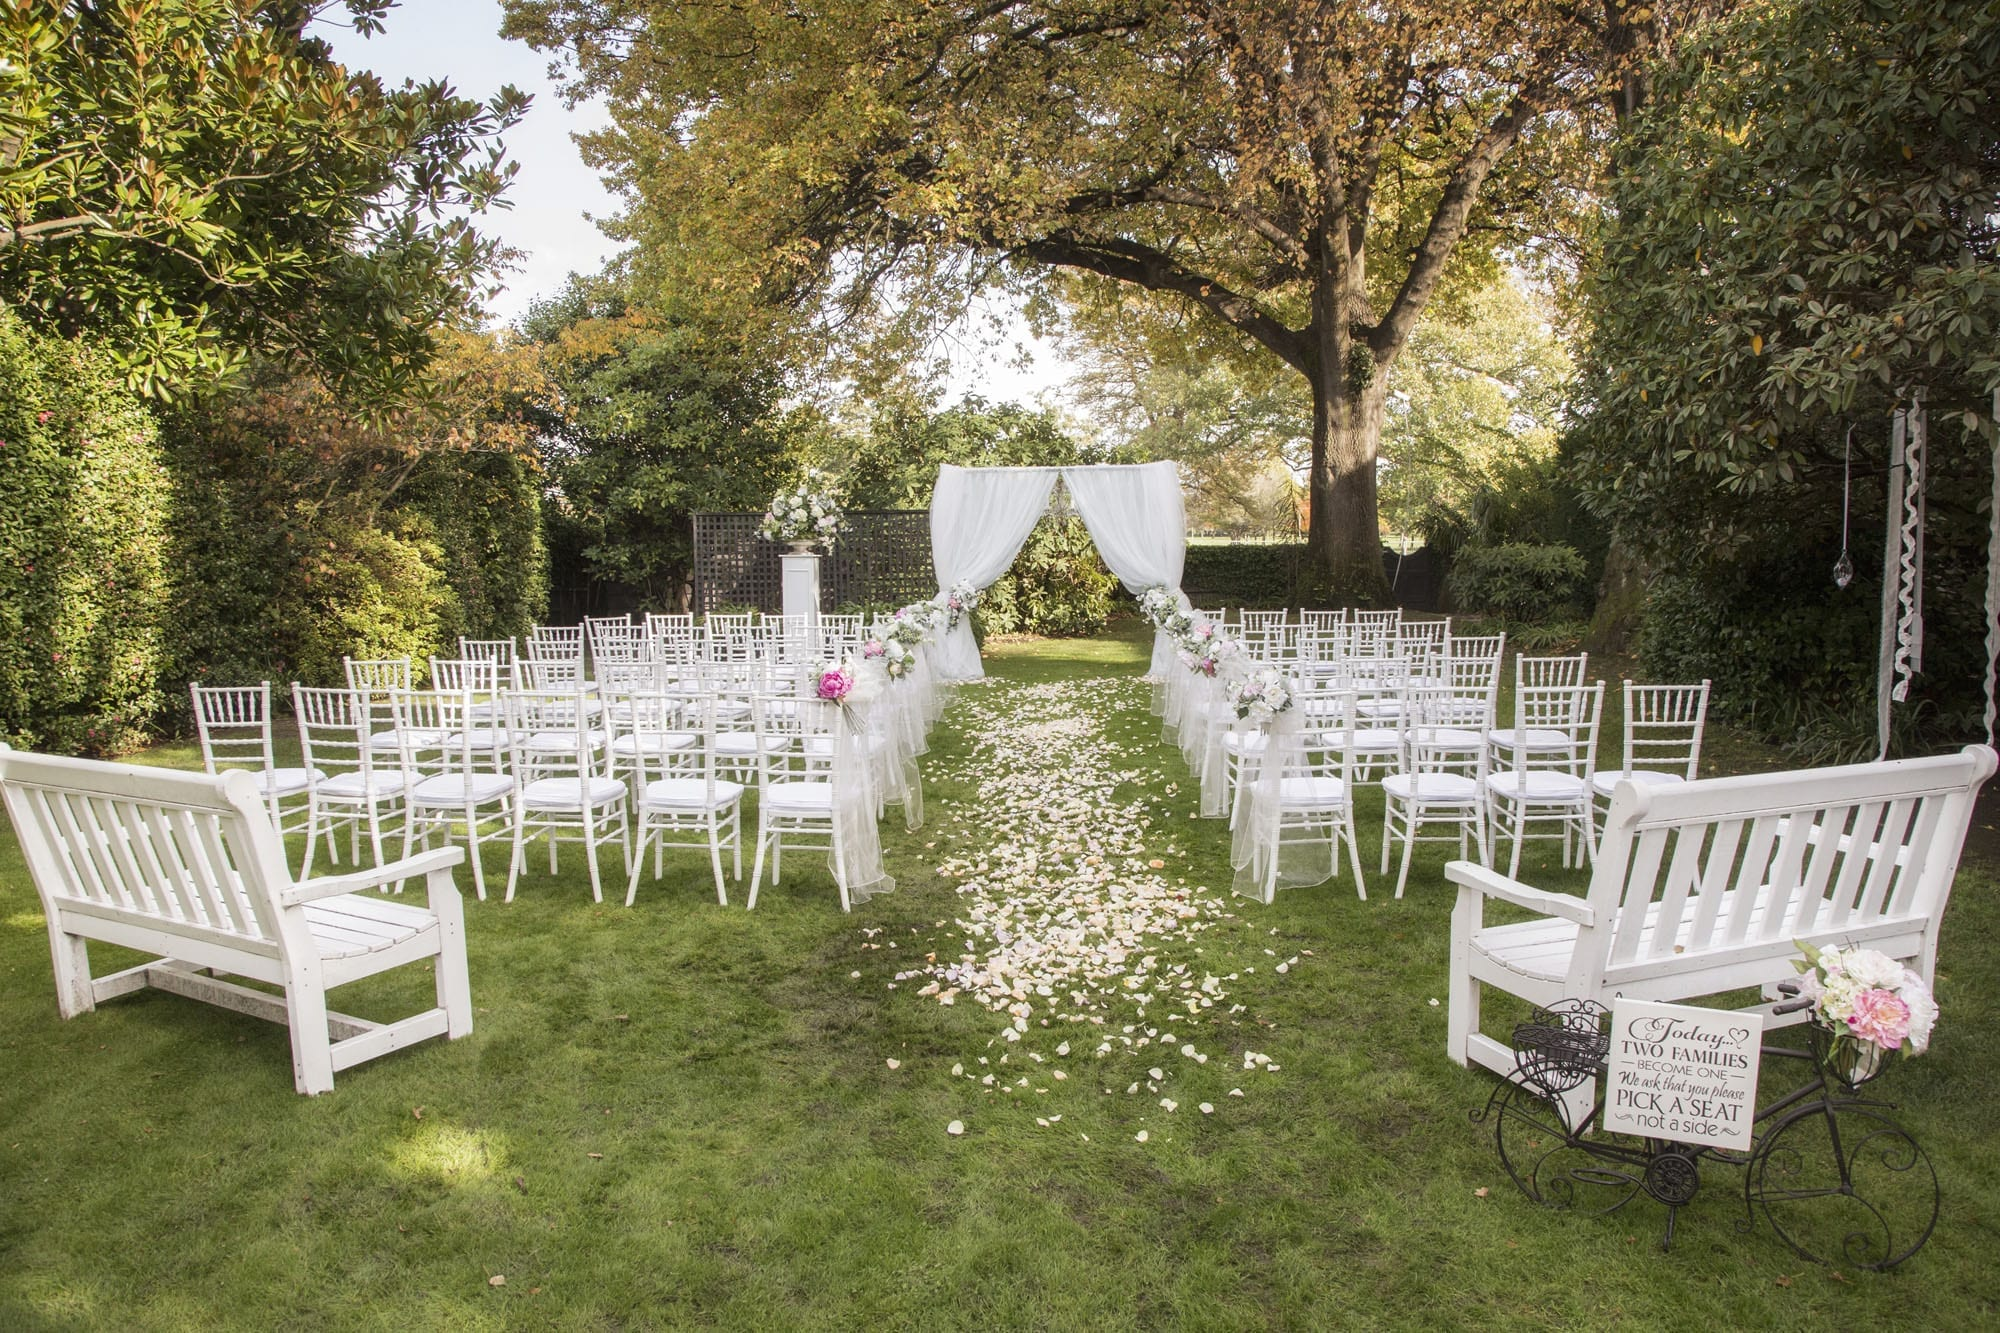 Kim Chan Events | Ceremony area with Archway and drape, flowers on chair ends in garden setting with large trees